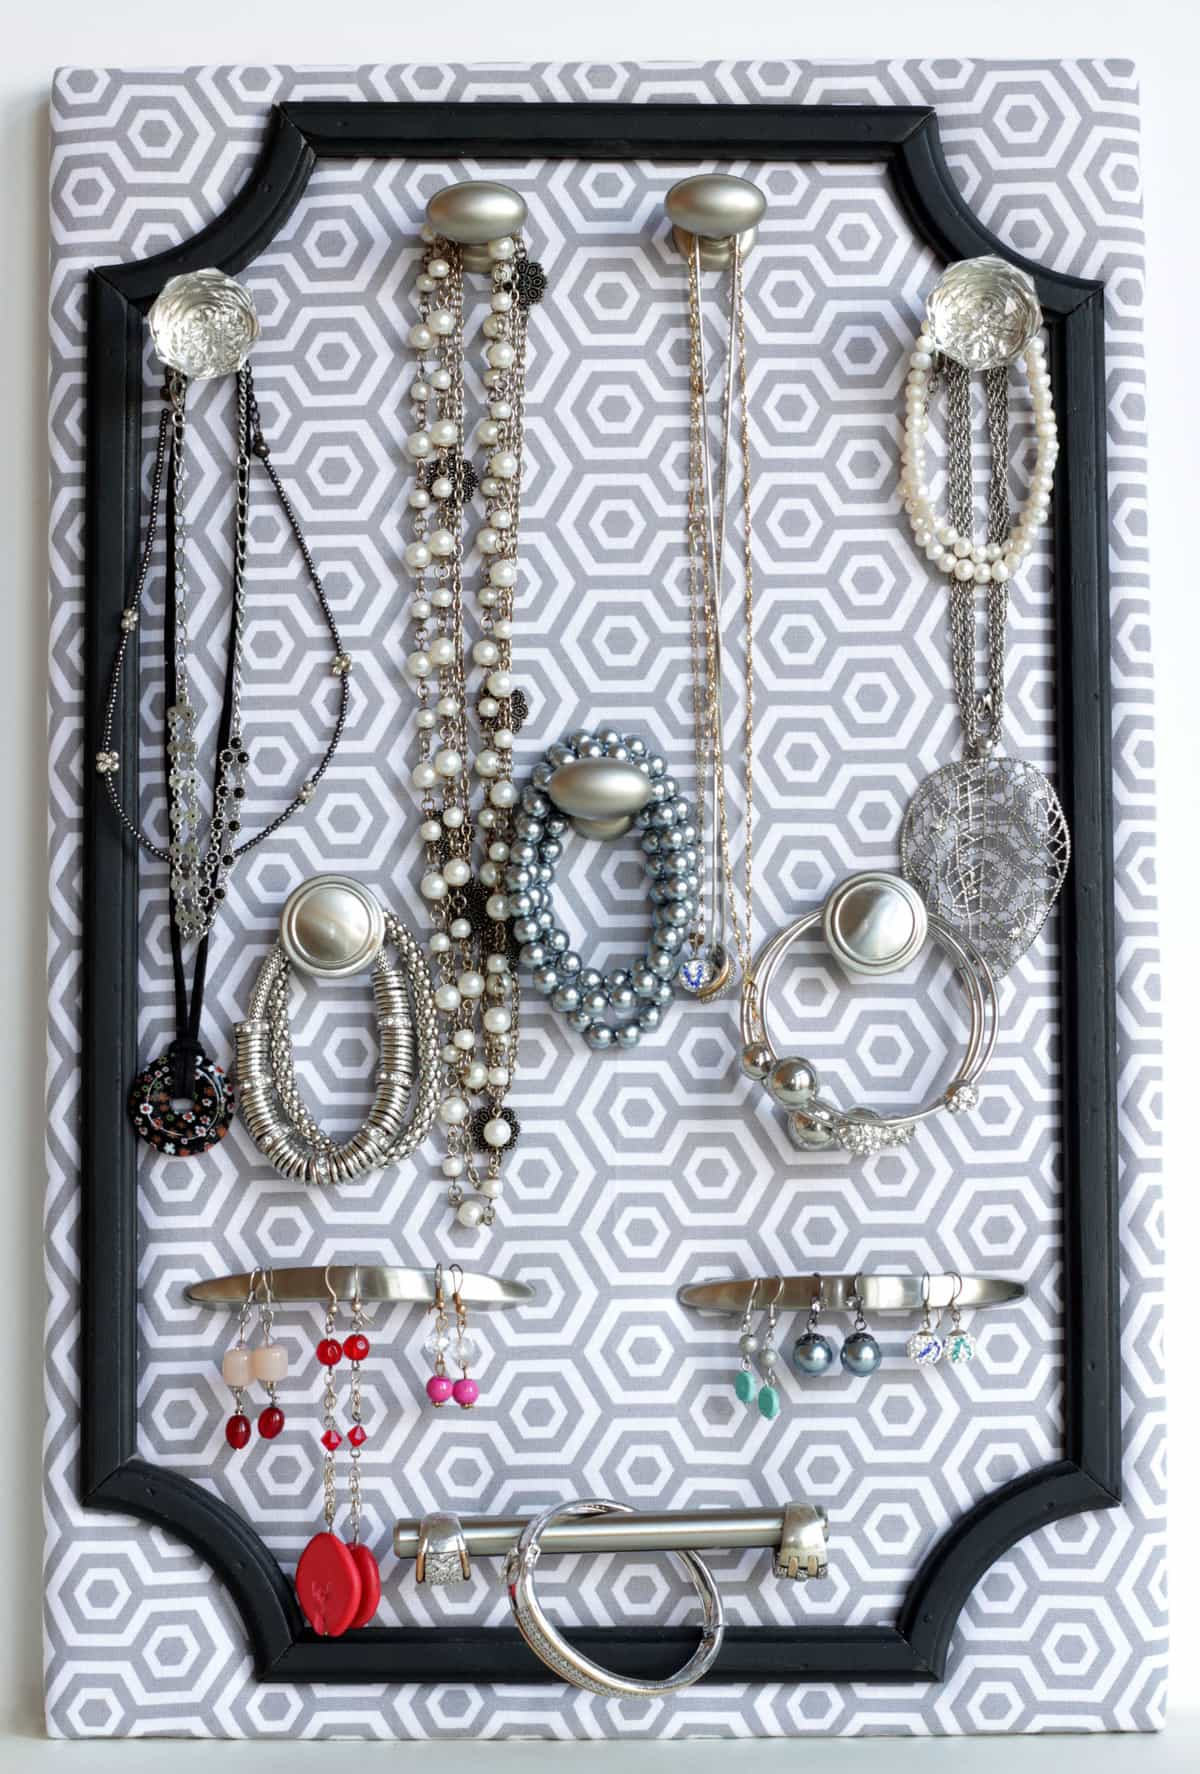 DIY Jewelry Organizer tutorial- a great idea for any home or as a gift, especially for a birthday gift or Mother's Day Gift!